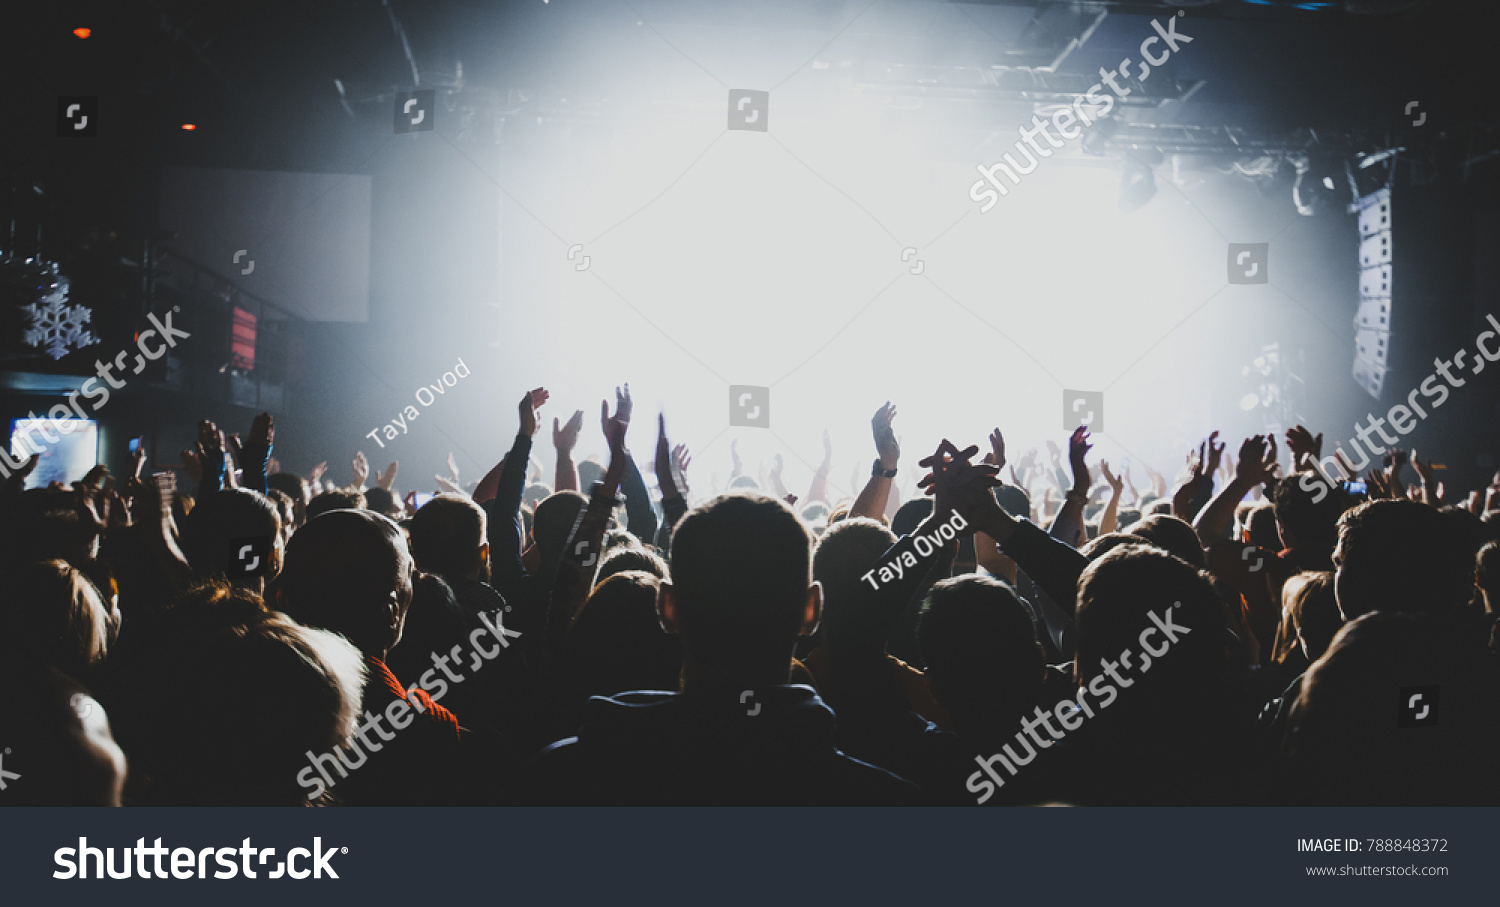 silhouettes of concert crowd in front of bright stage lights. Dark background, smoke, concert  spotlights #788848372